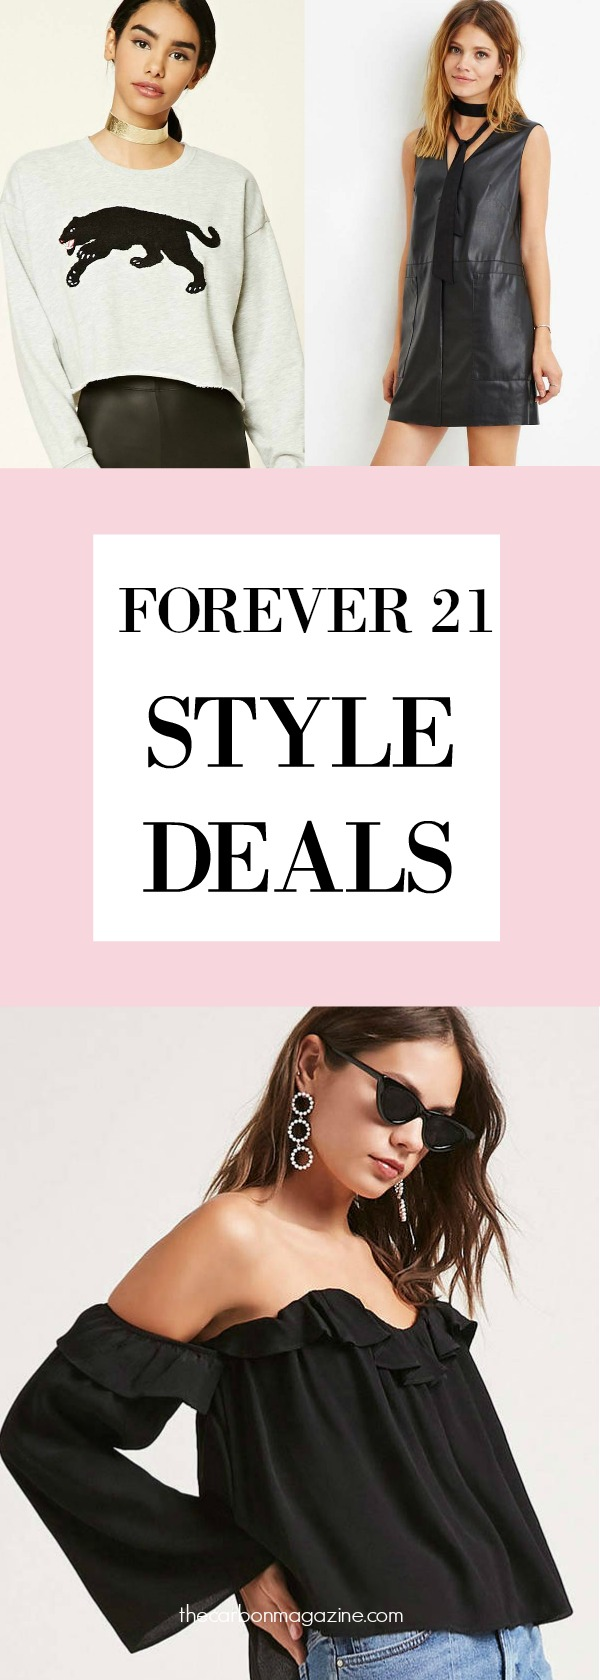 Forever 21 Style Deals November